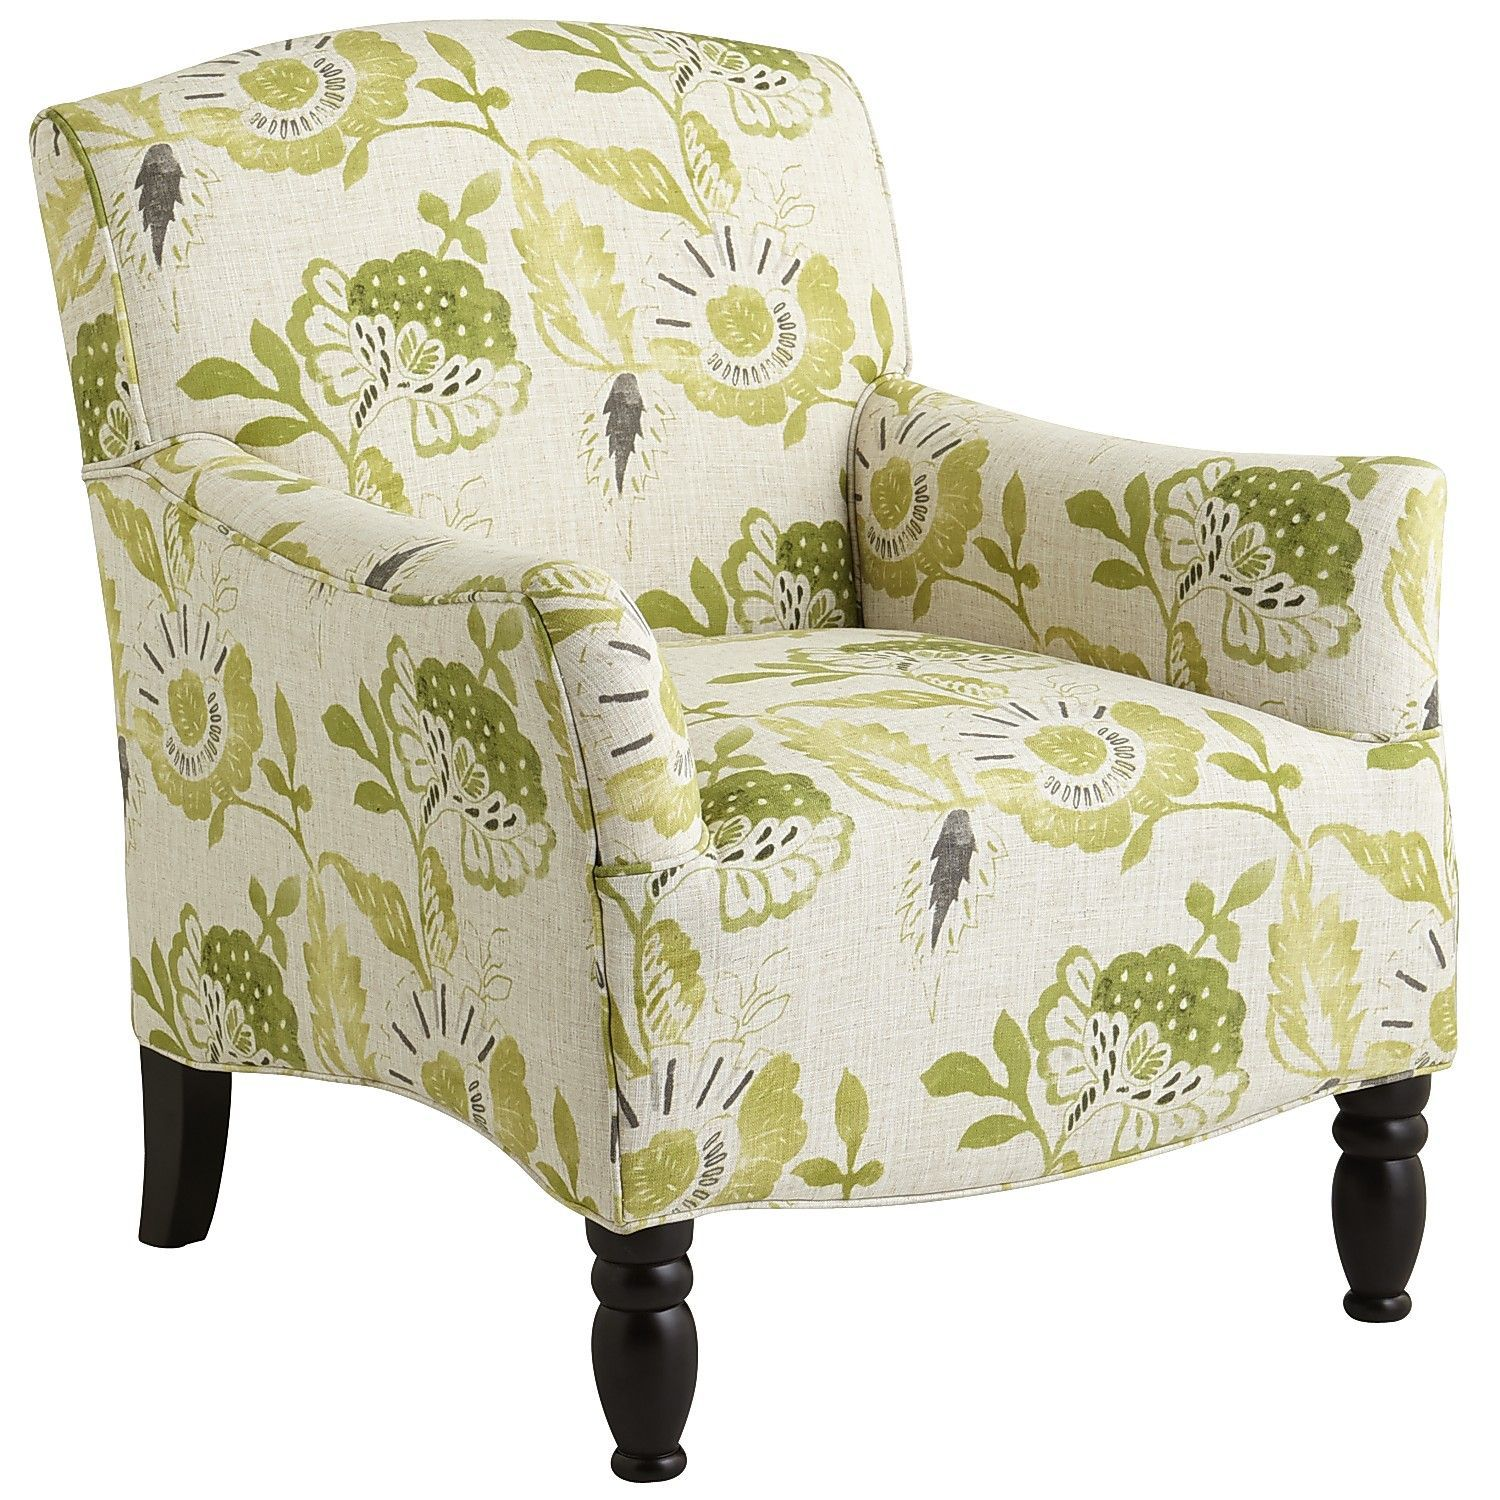 Frankie dally armchair green birch home decor furniture ideas reading chairspier oneliving room